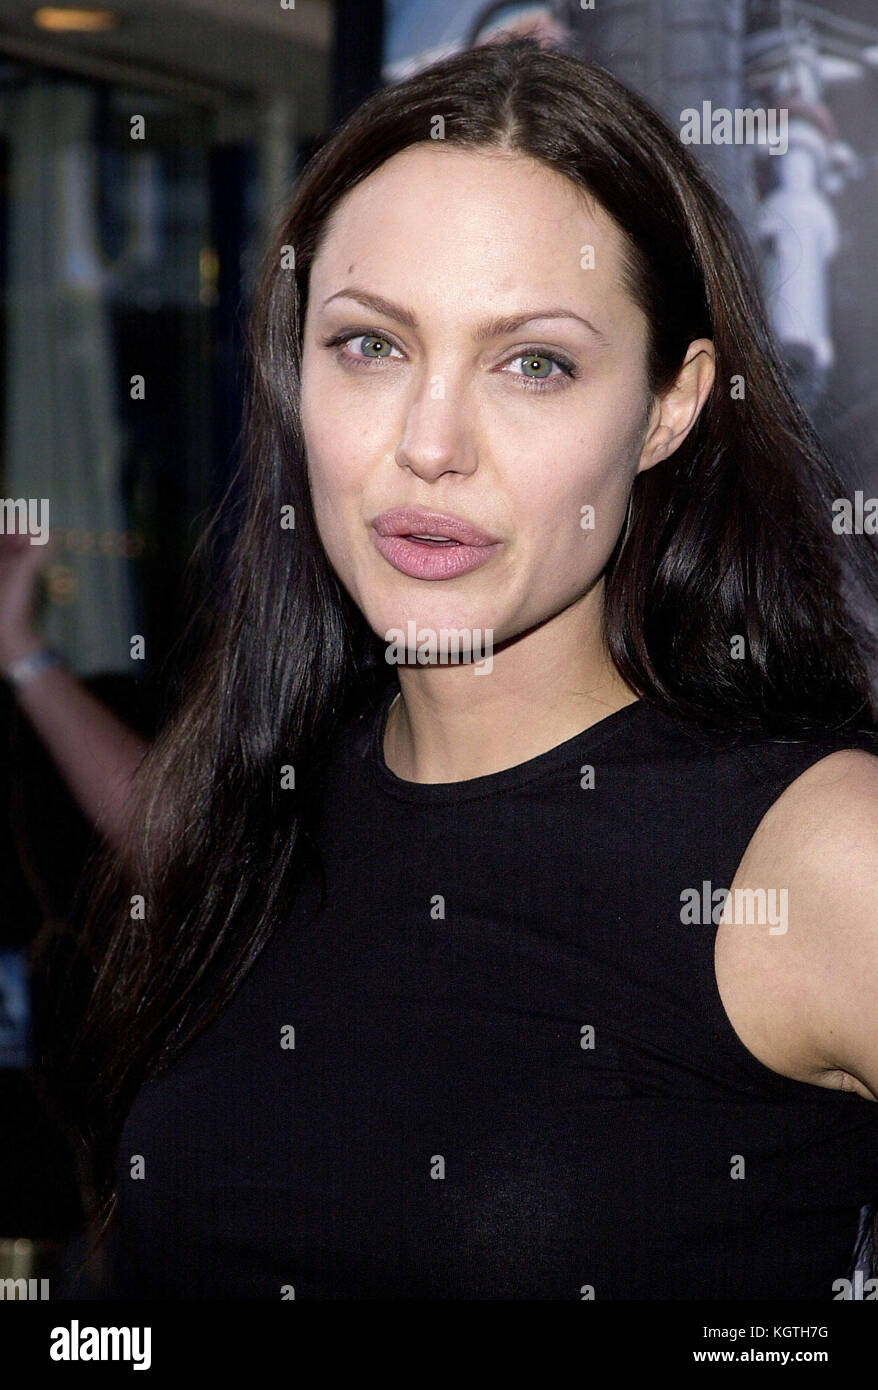 Angelina Jolie arriving at the Lara Croft: Tomb Raider premiere at the Westwood Village Theatre  in Los Angeles - Stock Image